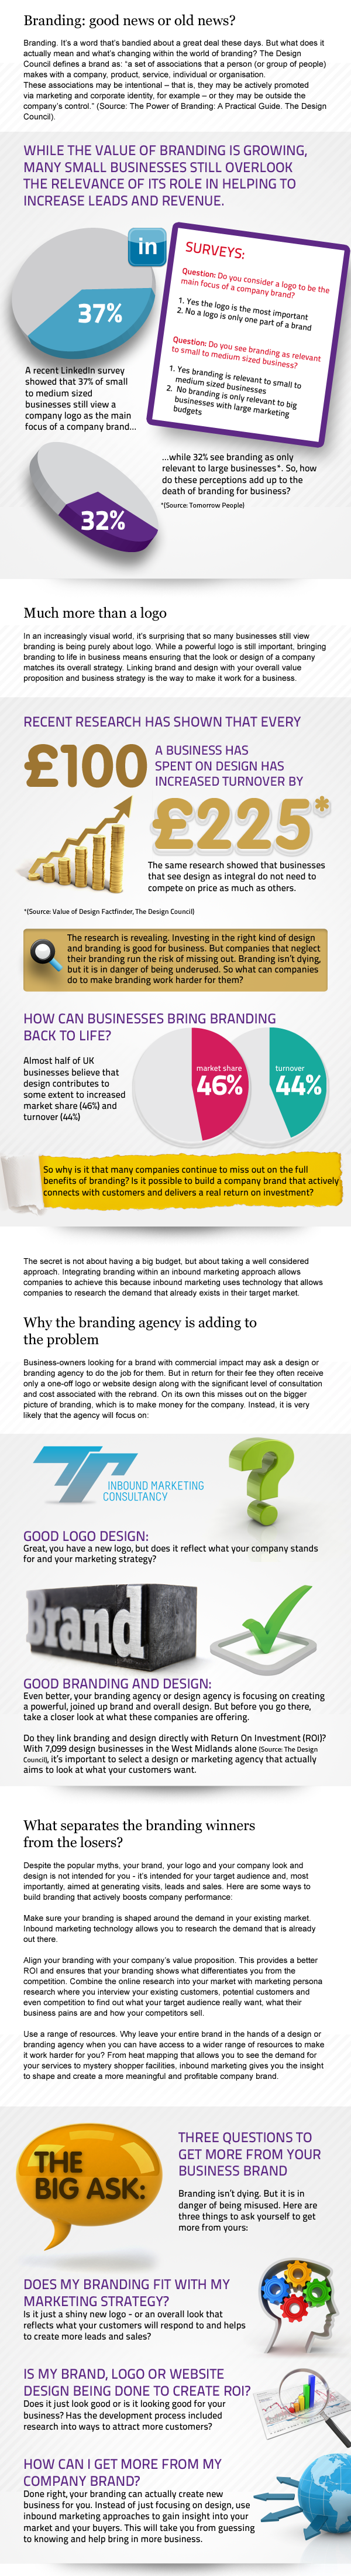 death-of-branding_infographic